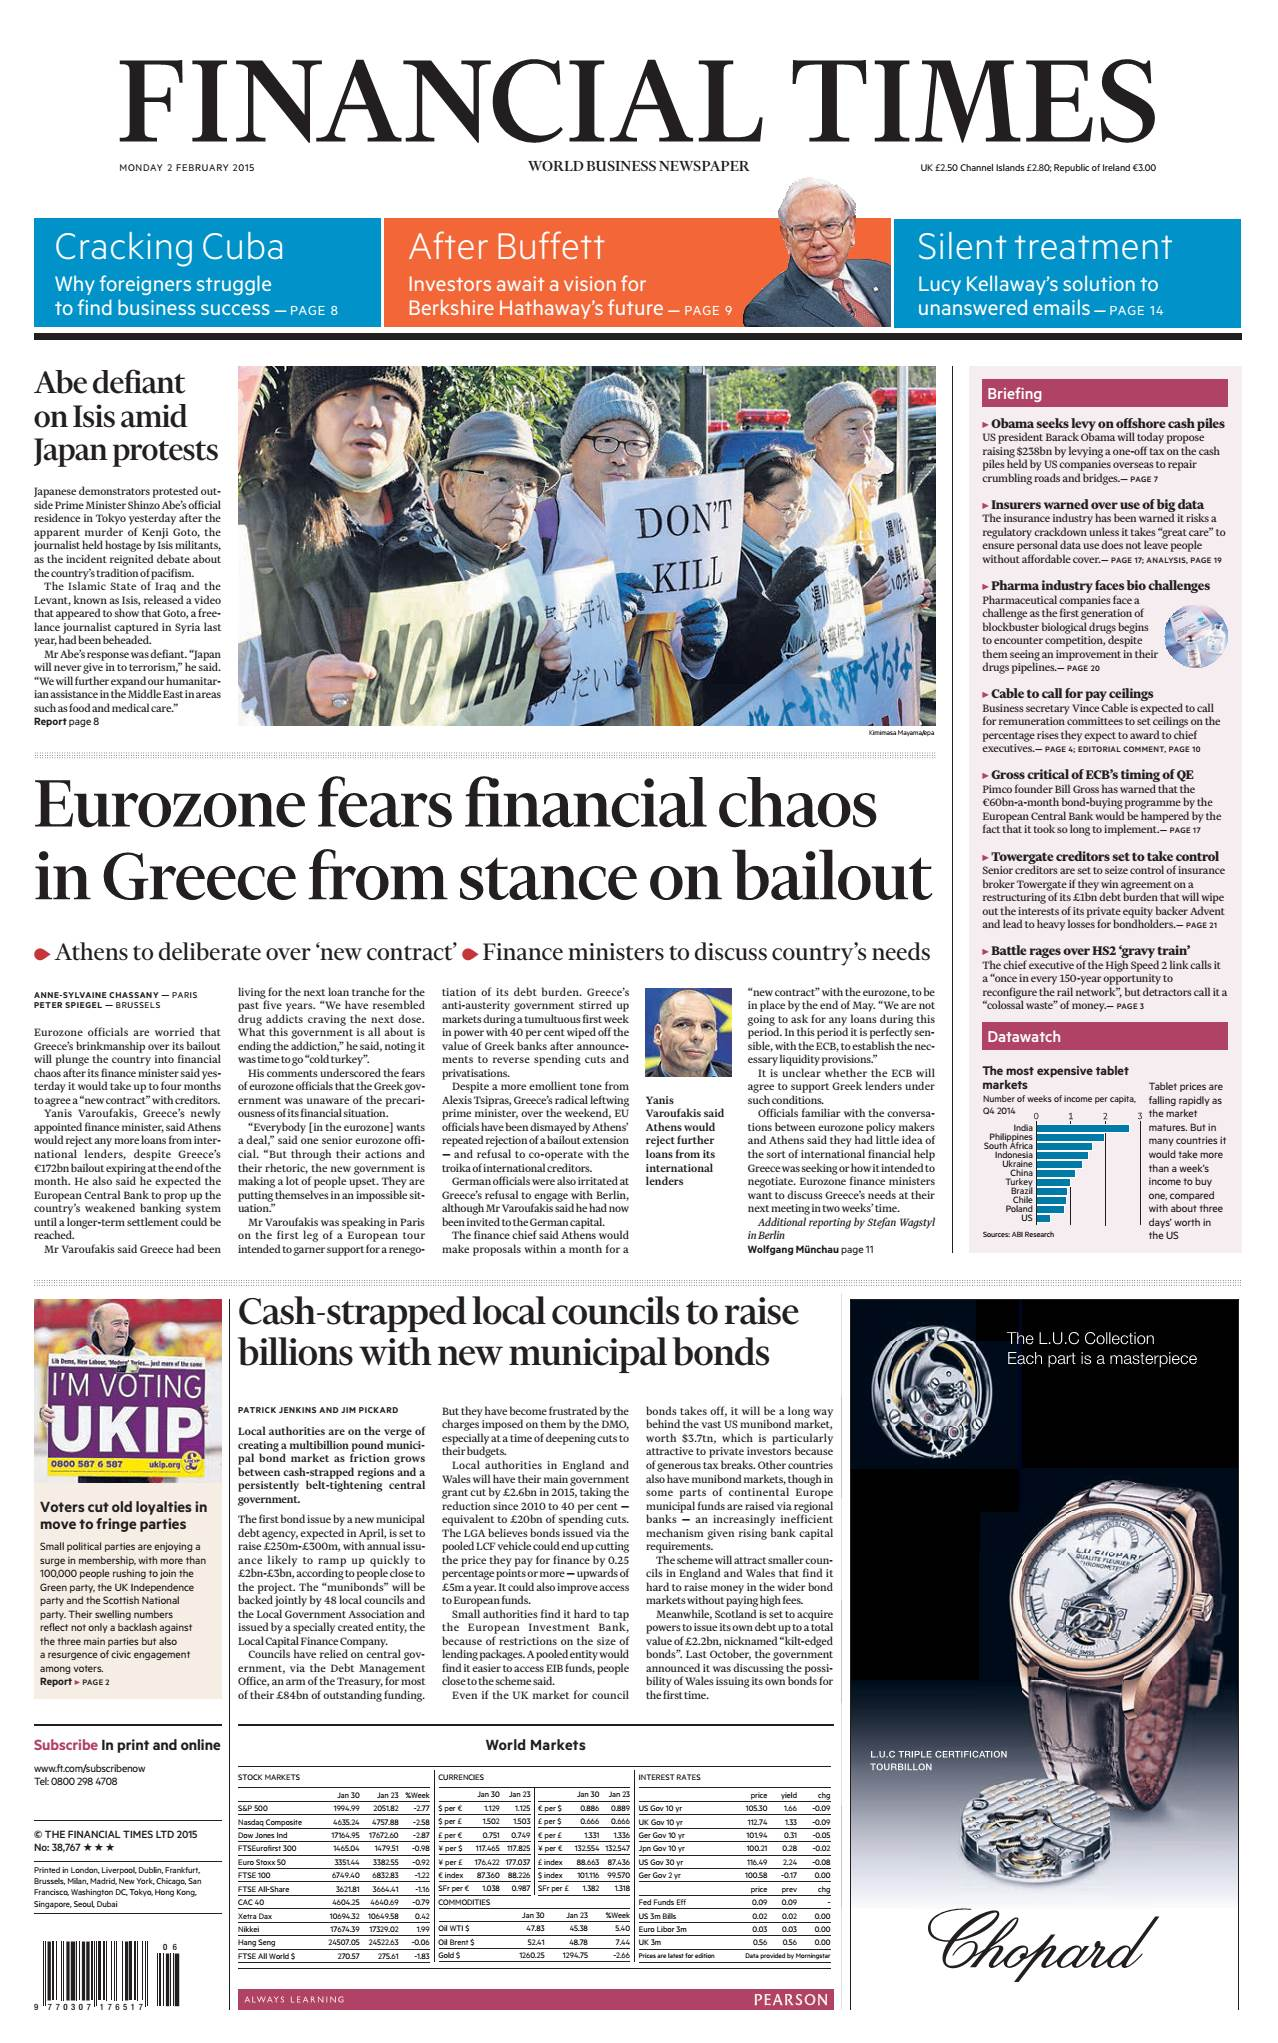 Financial Times UK February 02, 2015 free download